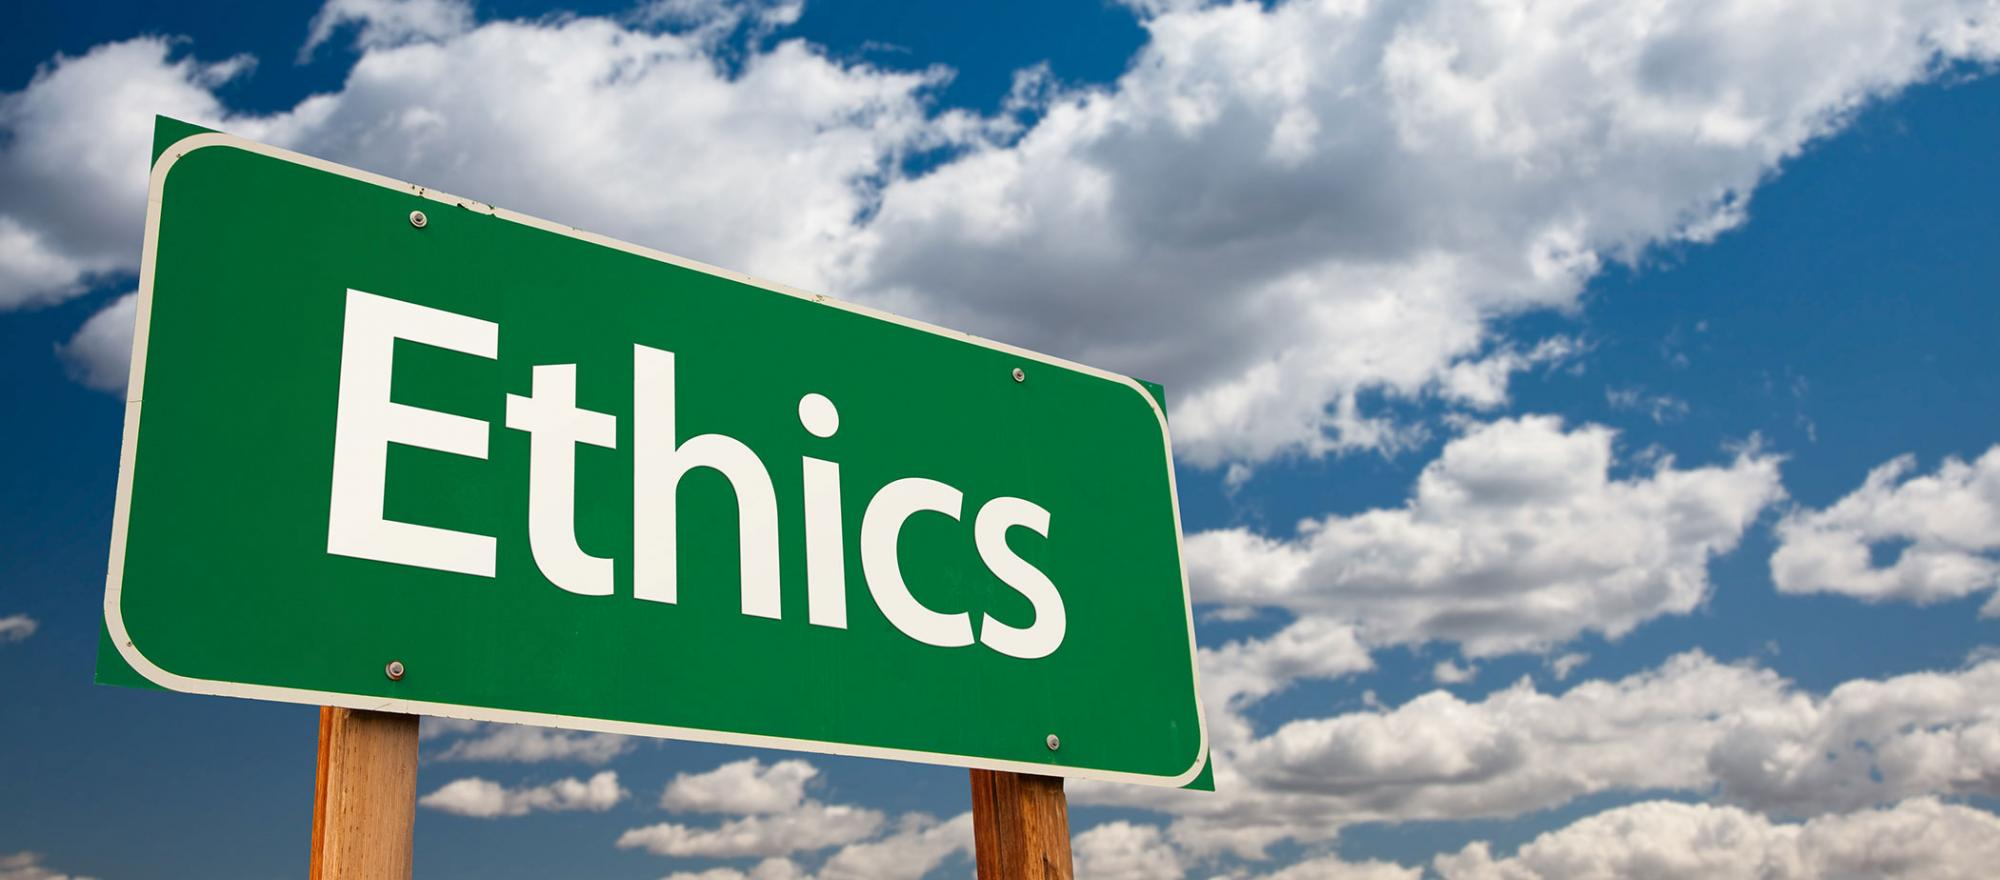 A focus on ethical conduct